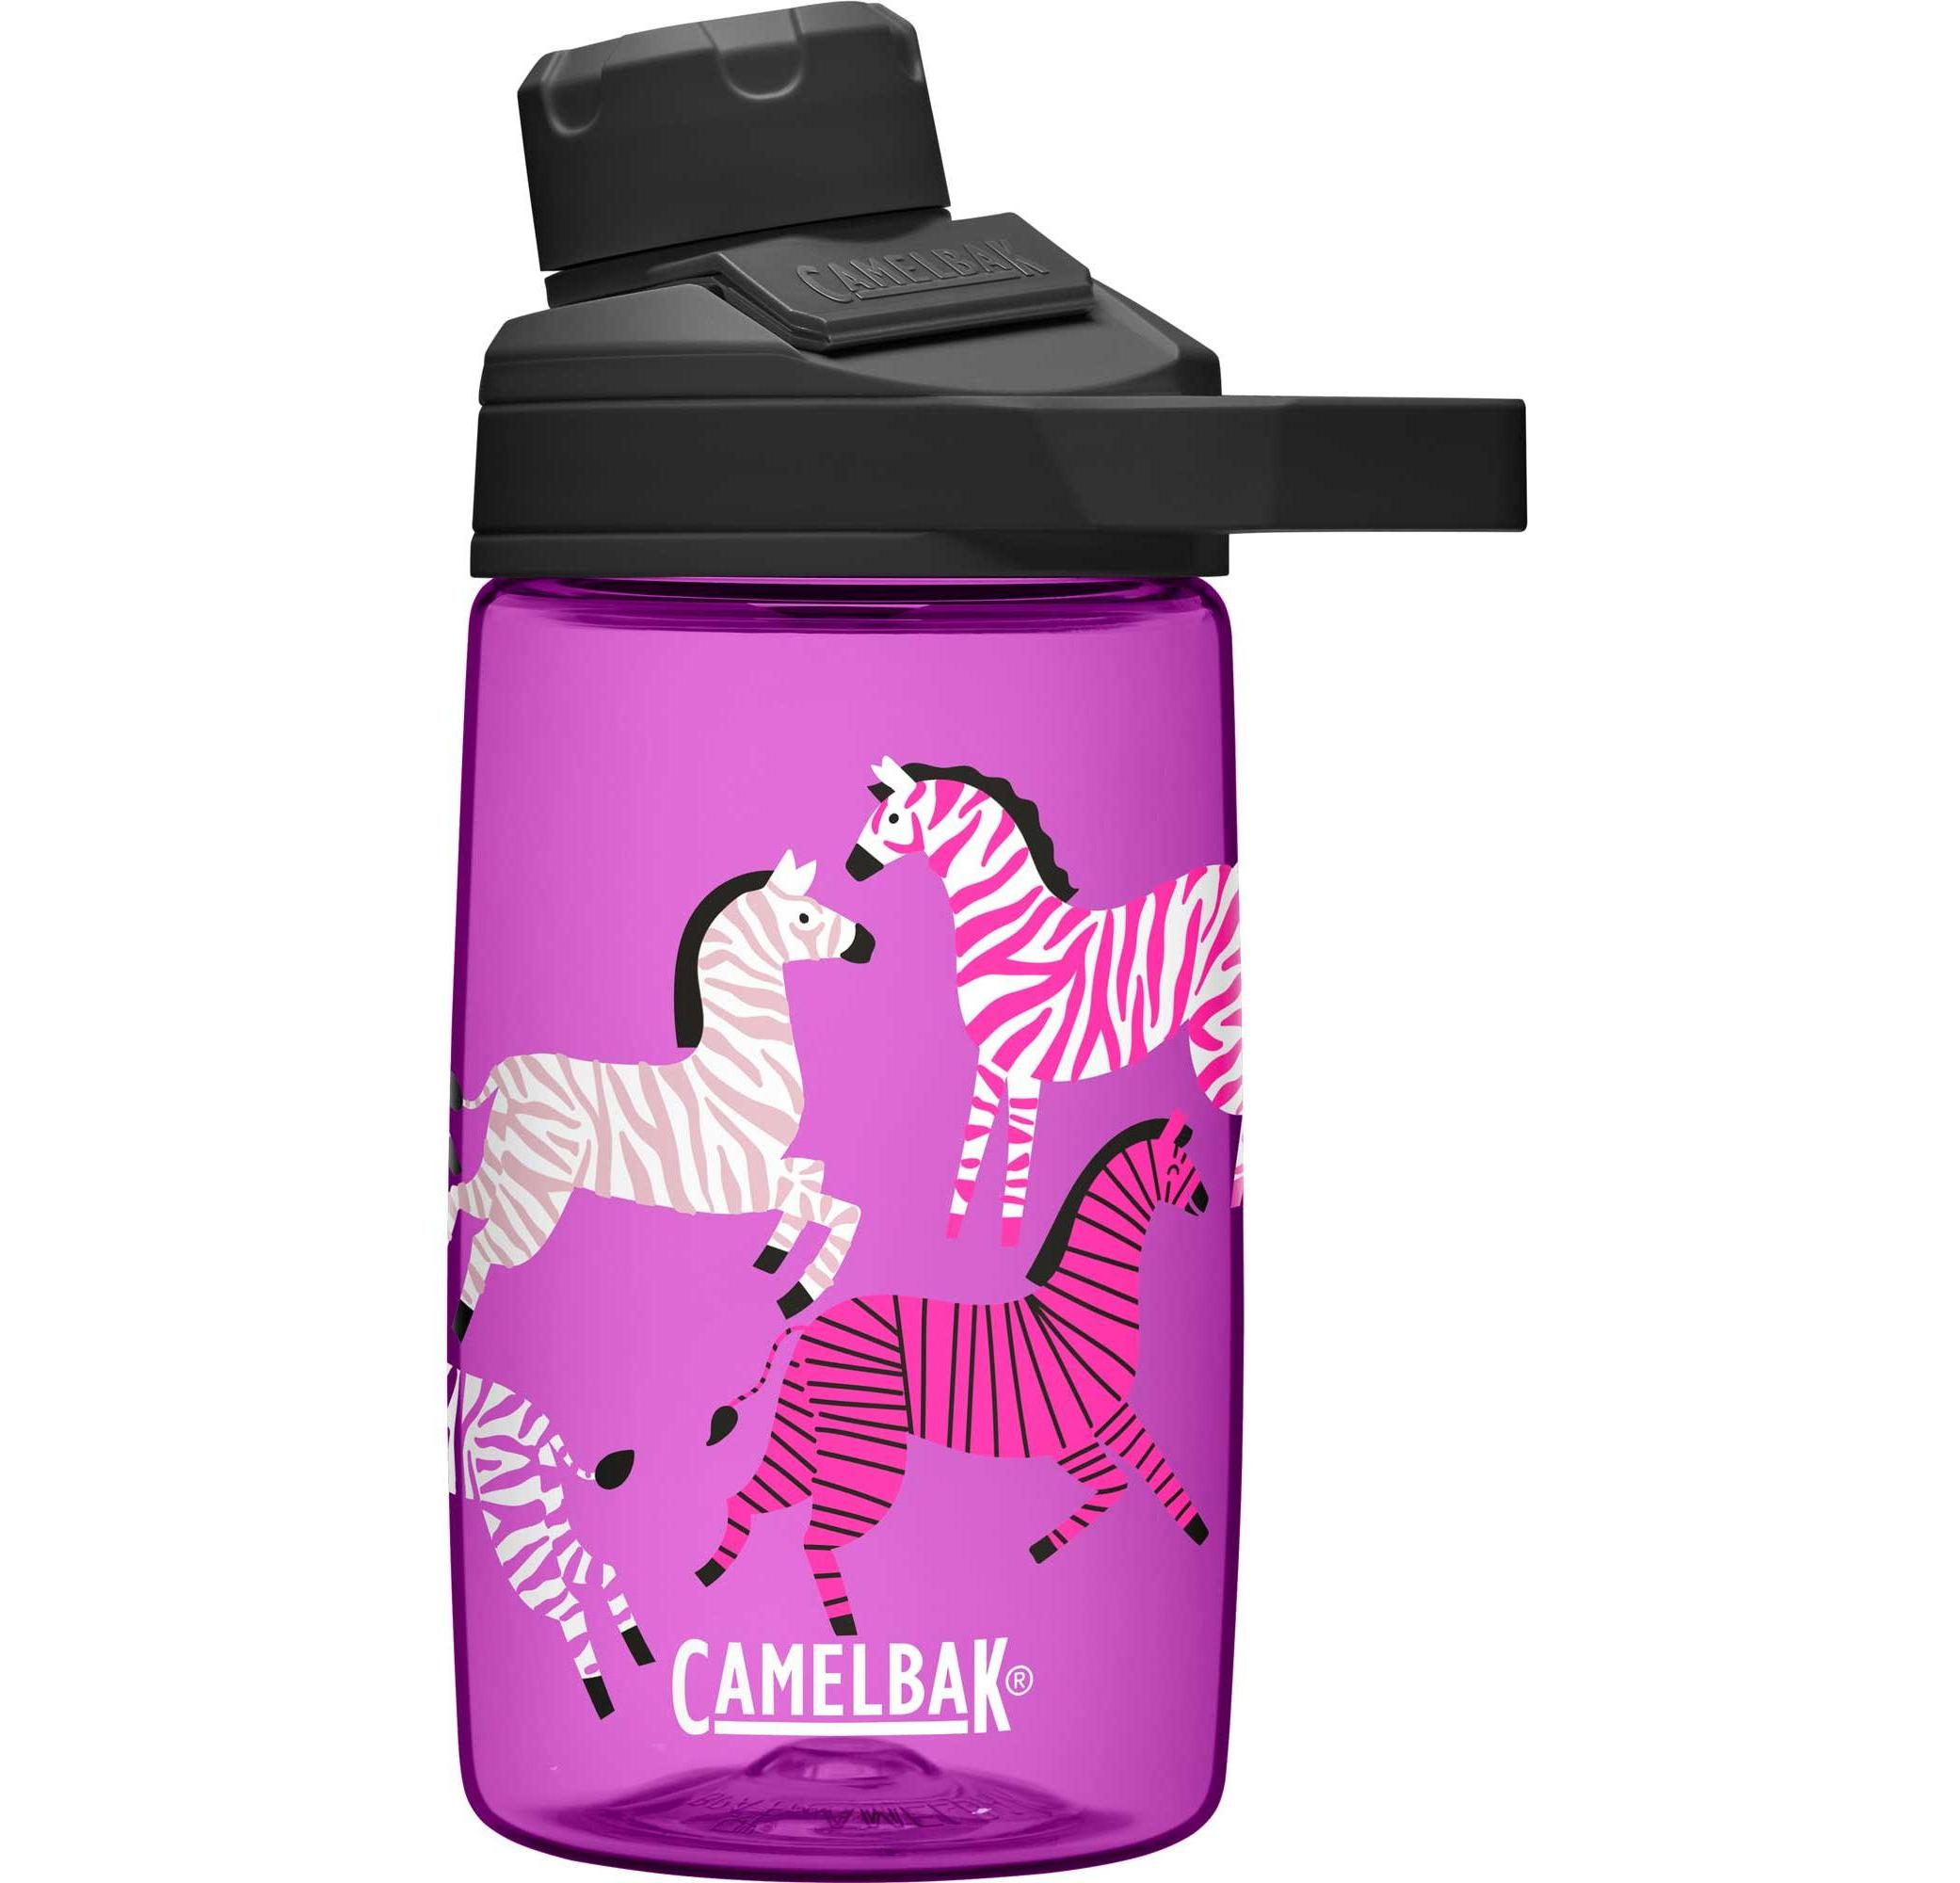 Buy Camelbak Chute Insulated 6l Fire In Dubai At Cheap Price